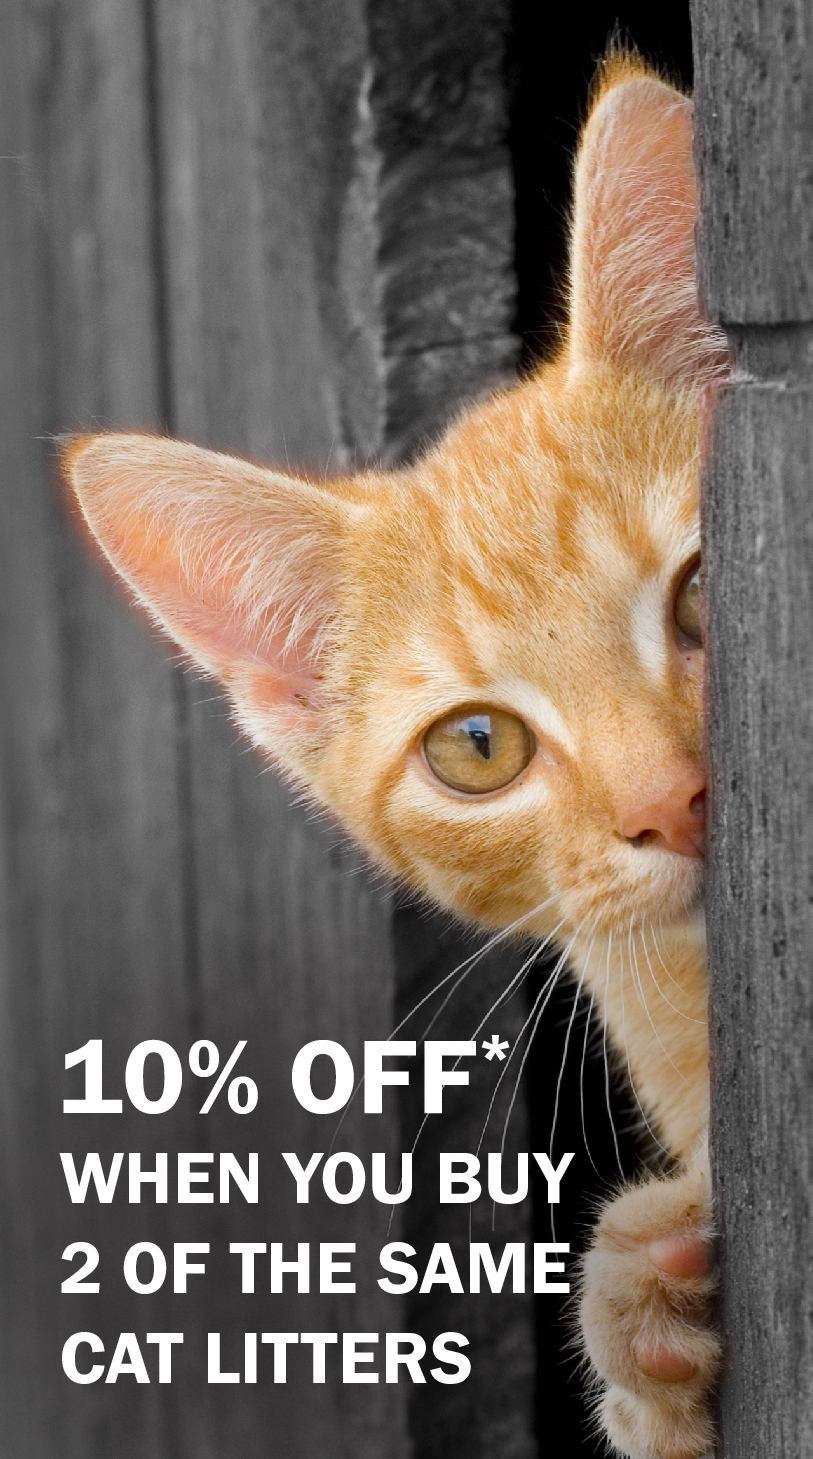 10% Off when you buy 2 of the same cat litters